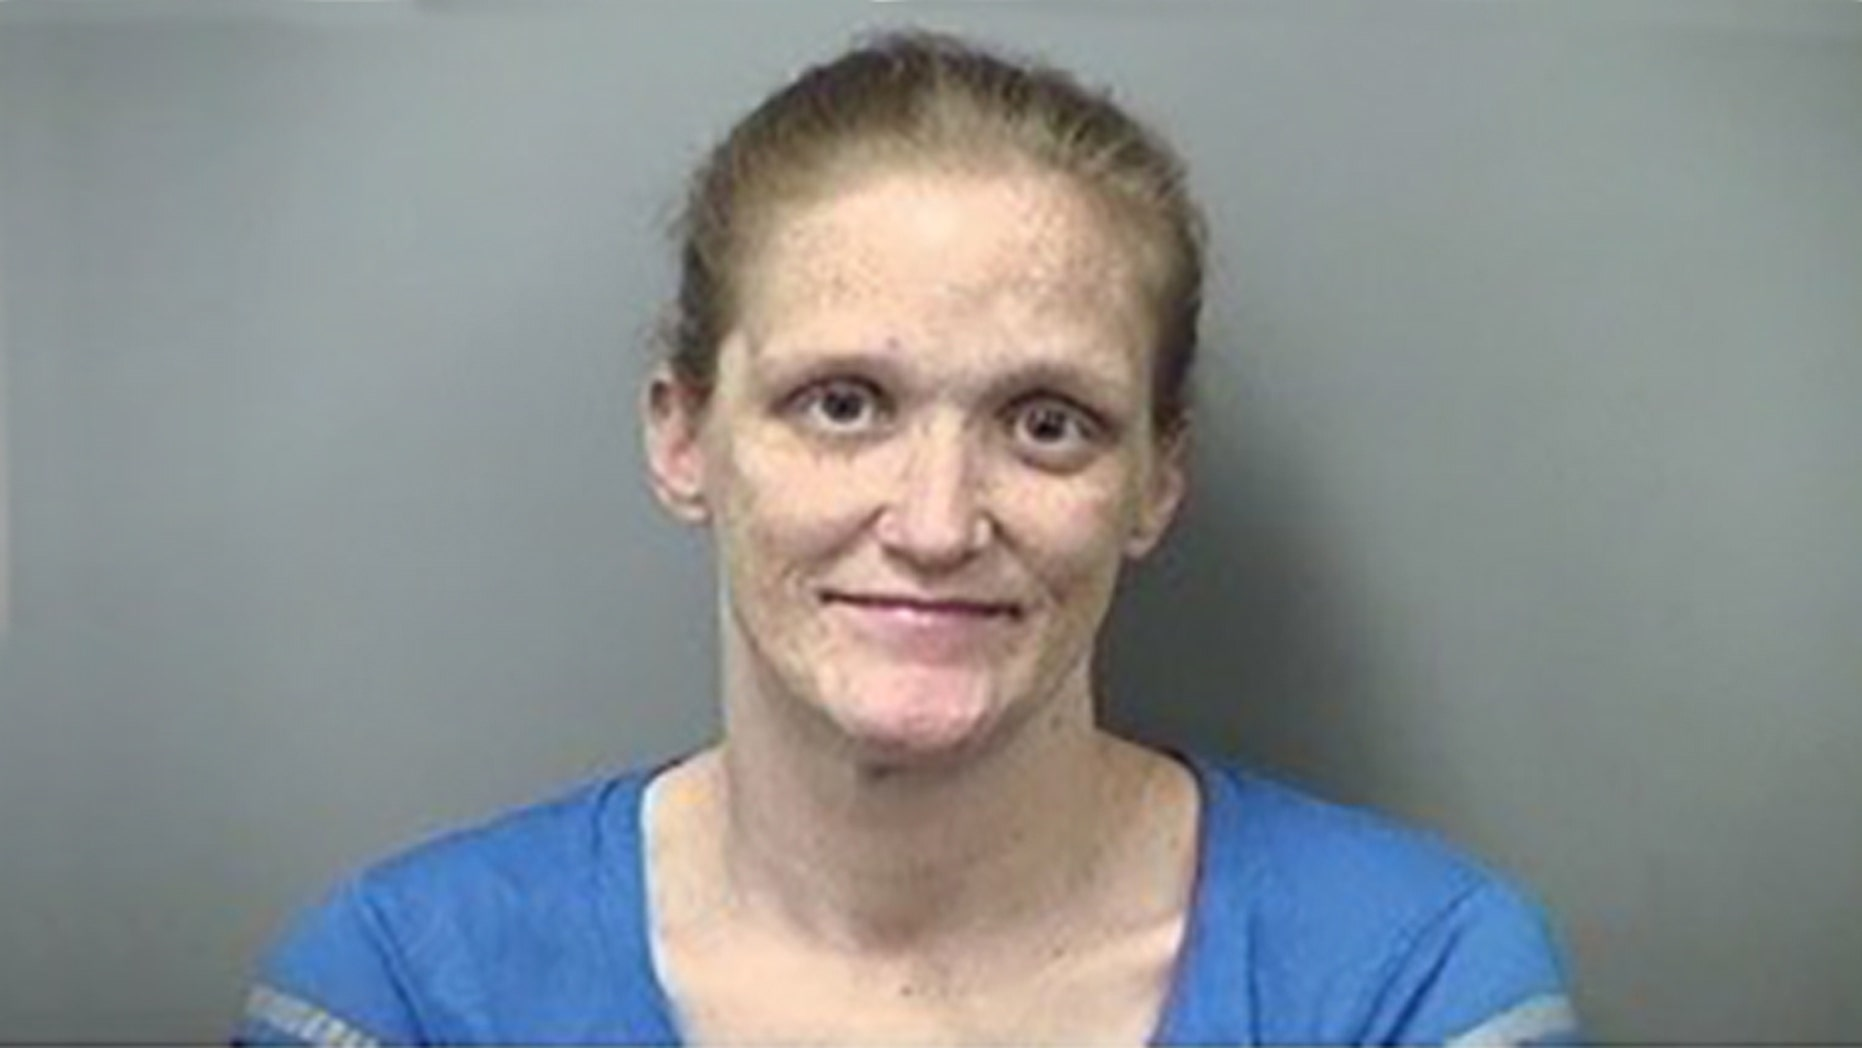 Meleney Pully was sentenced to nearly 20 years in prison after she pleaded guilty to human trafficking of a minor.